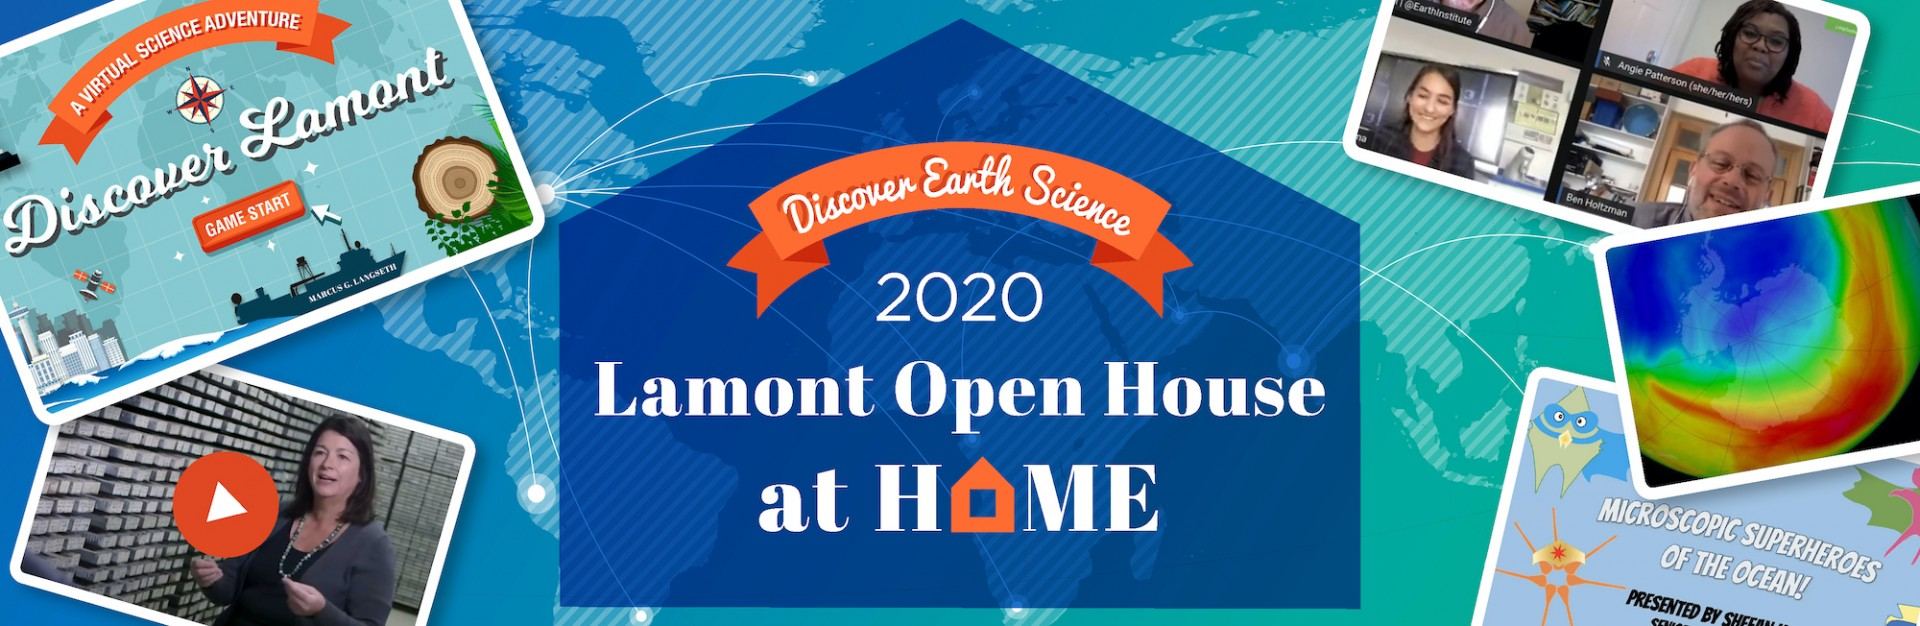 Lamont Open House at Home banner